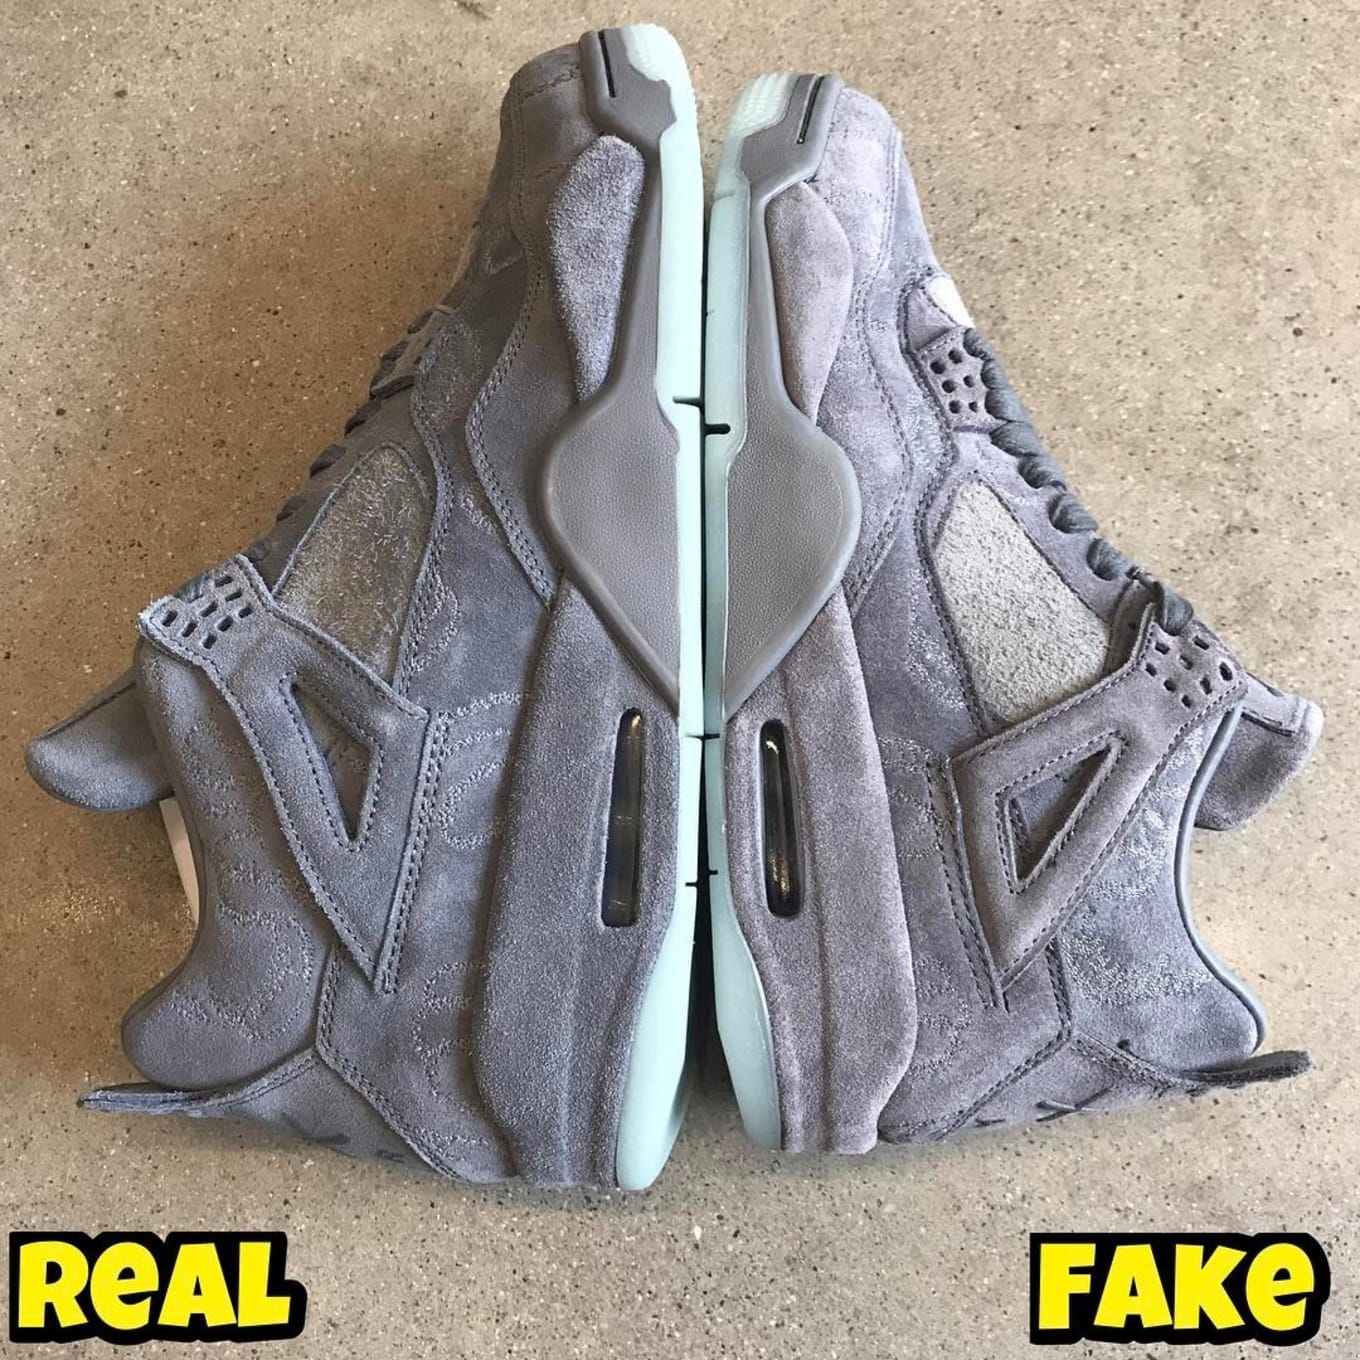 on sale c1f51 7ff69 Kaws x Air Jordan 4 Real Fake Legit Check | Sole Collector